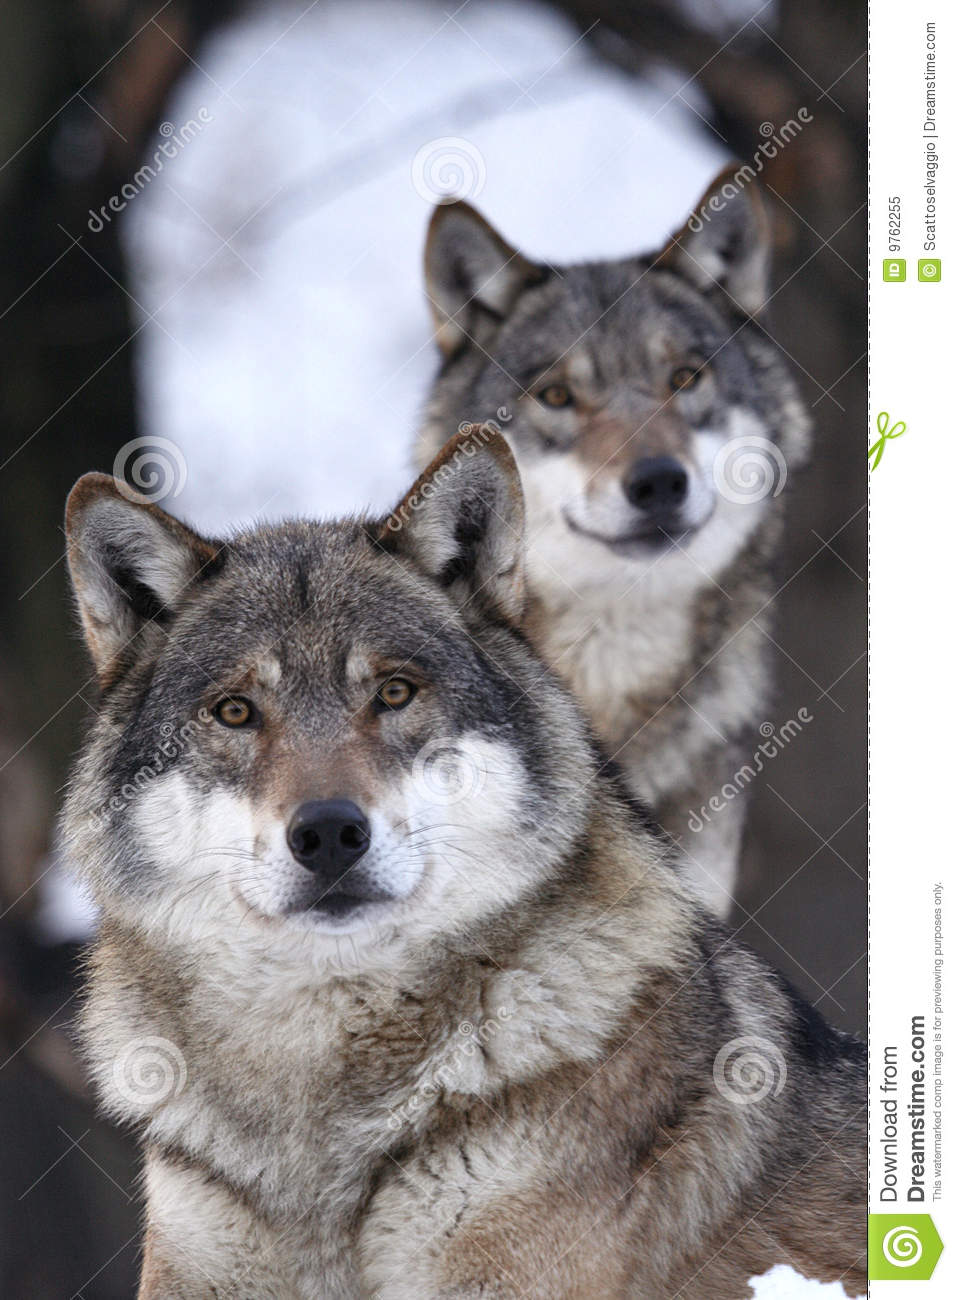 Pair of looking wolves foreground. The wolf is not as bad as they say, but you better not take too much confidence.